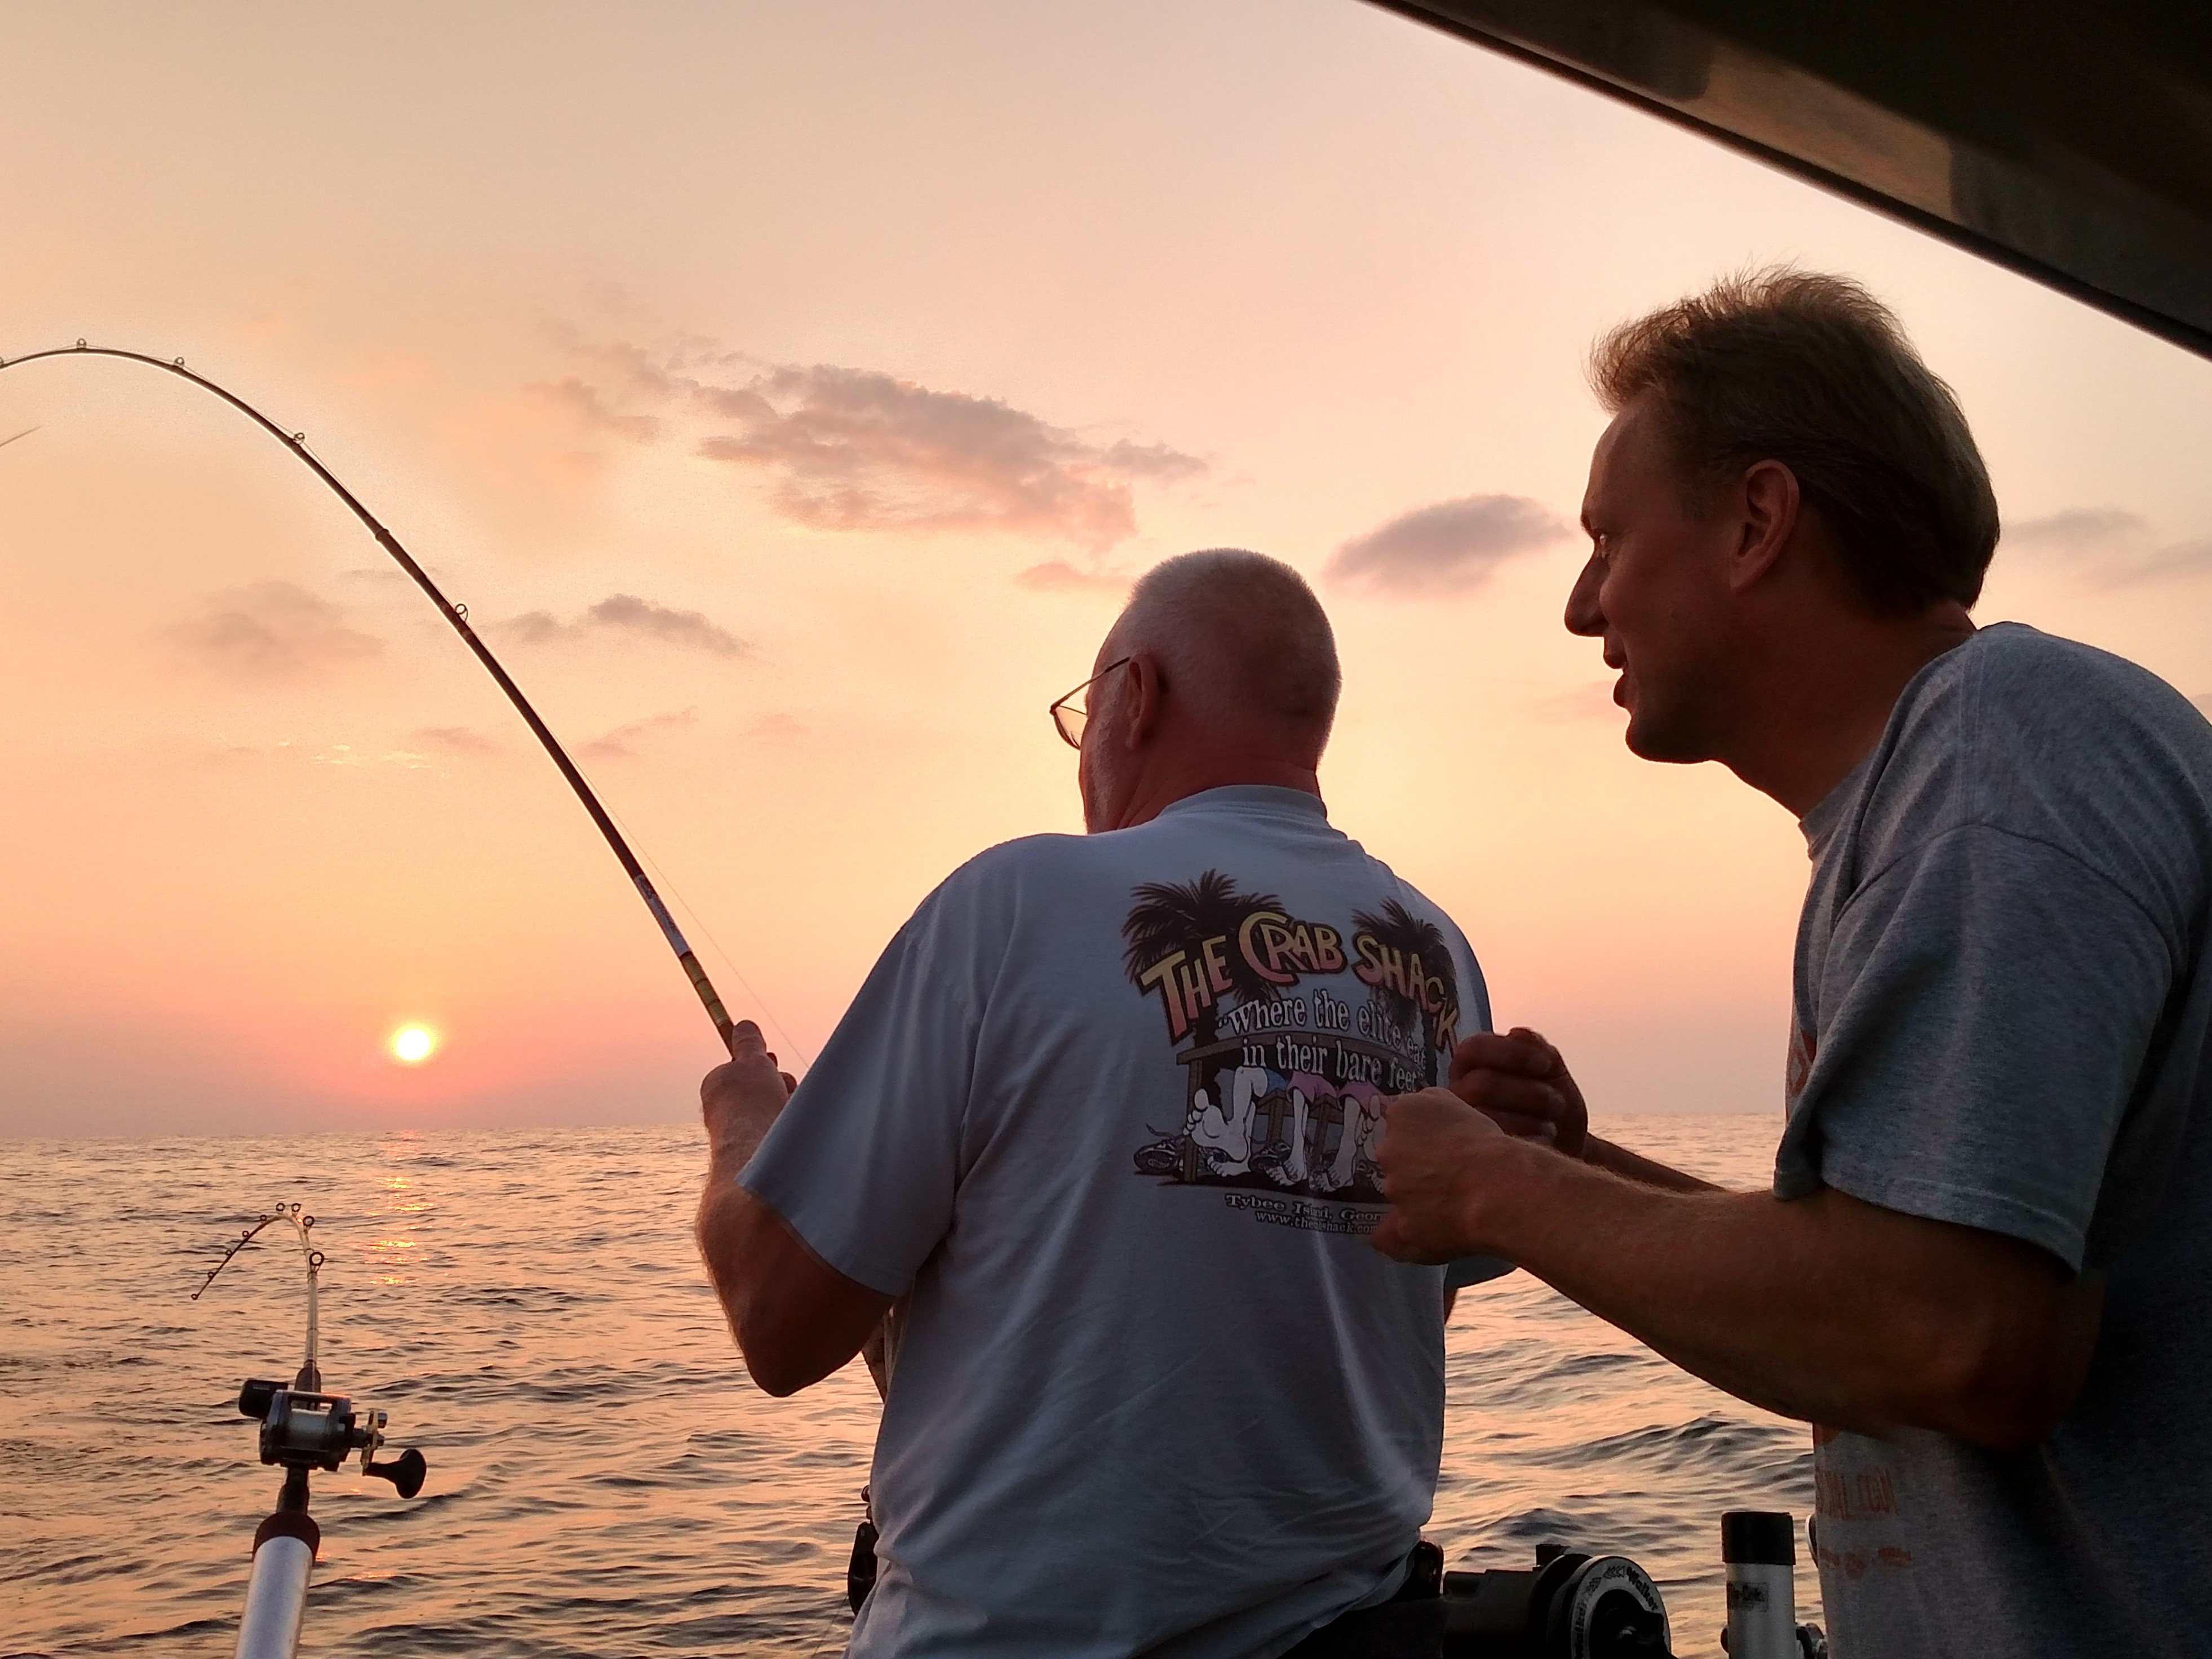 Andy Mikos (right) pleads for a Chinook, such is the draw of kings on Lake Michigan, at dawn on a late summer outing in a file photo. Credit: Dale Bowman